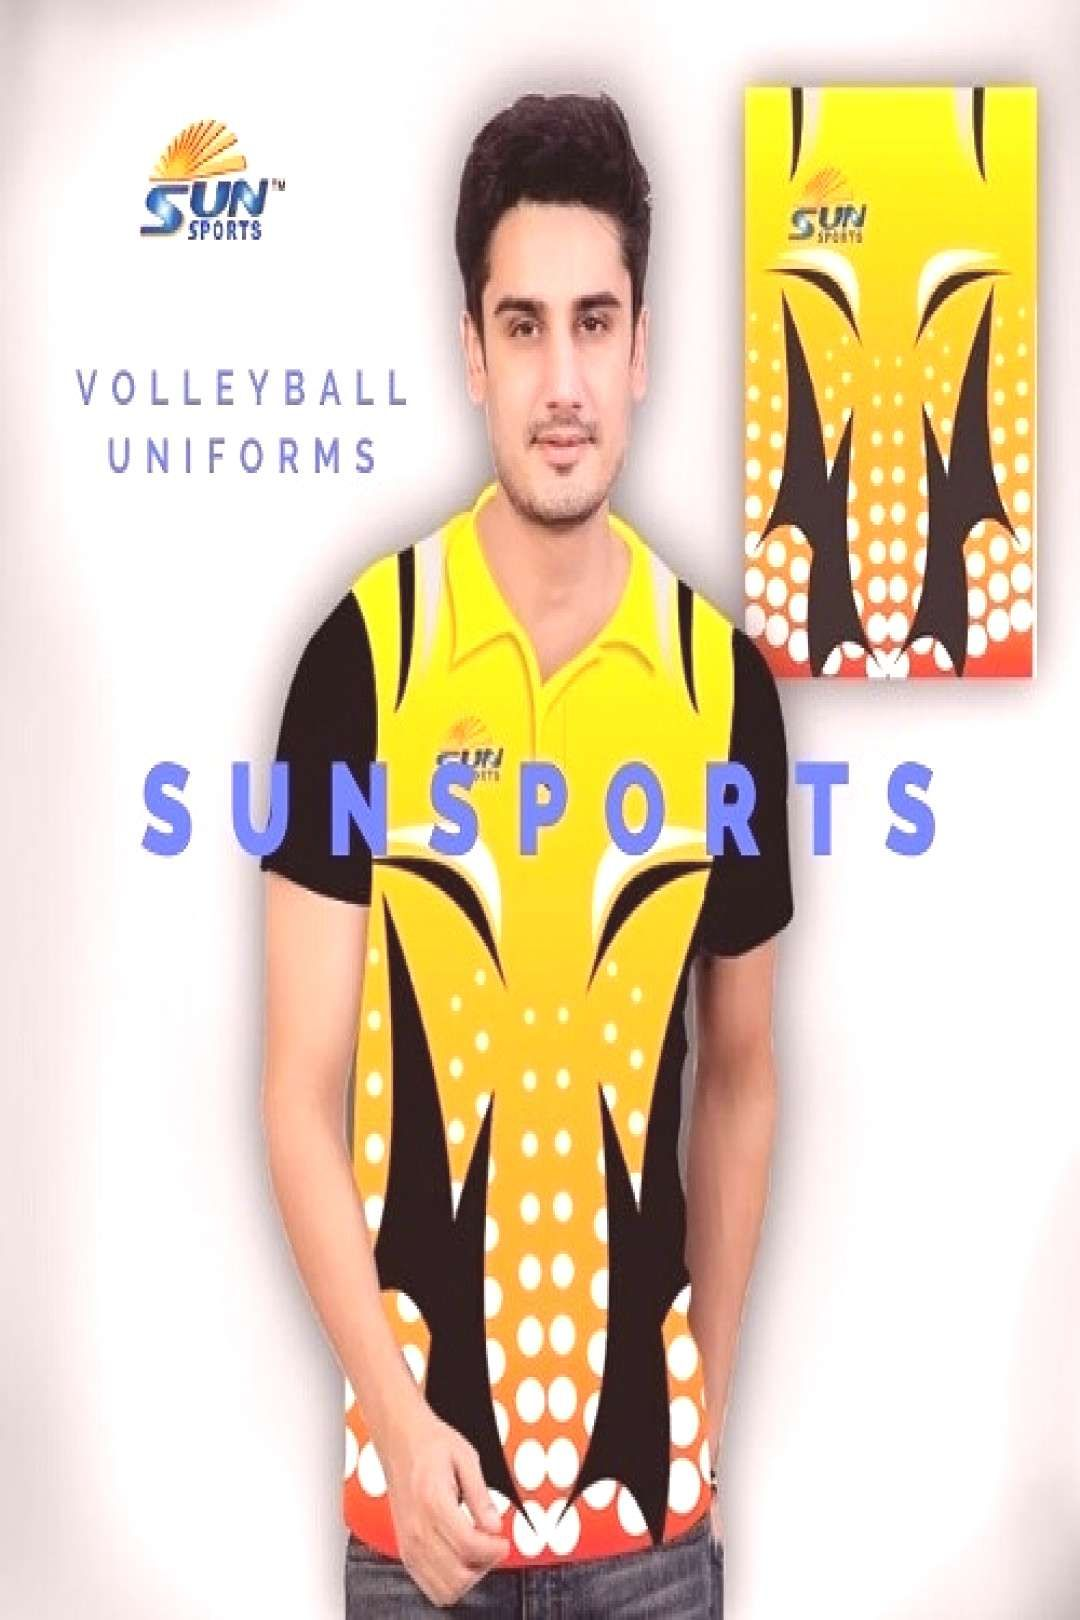 Standing Uniforms Sports Volley Design Custom People Women Ball More Sun Men One And Or Sun Sports Volley B In 2020 Volleyball Shorts